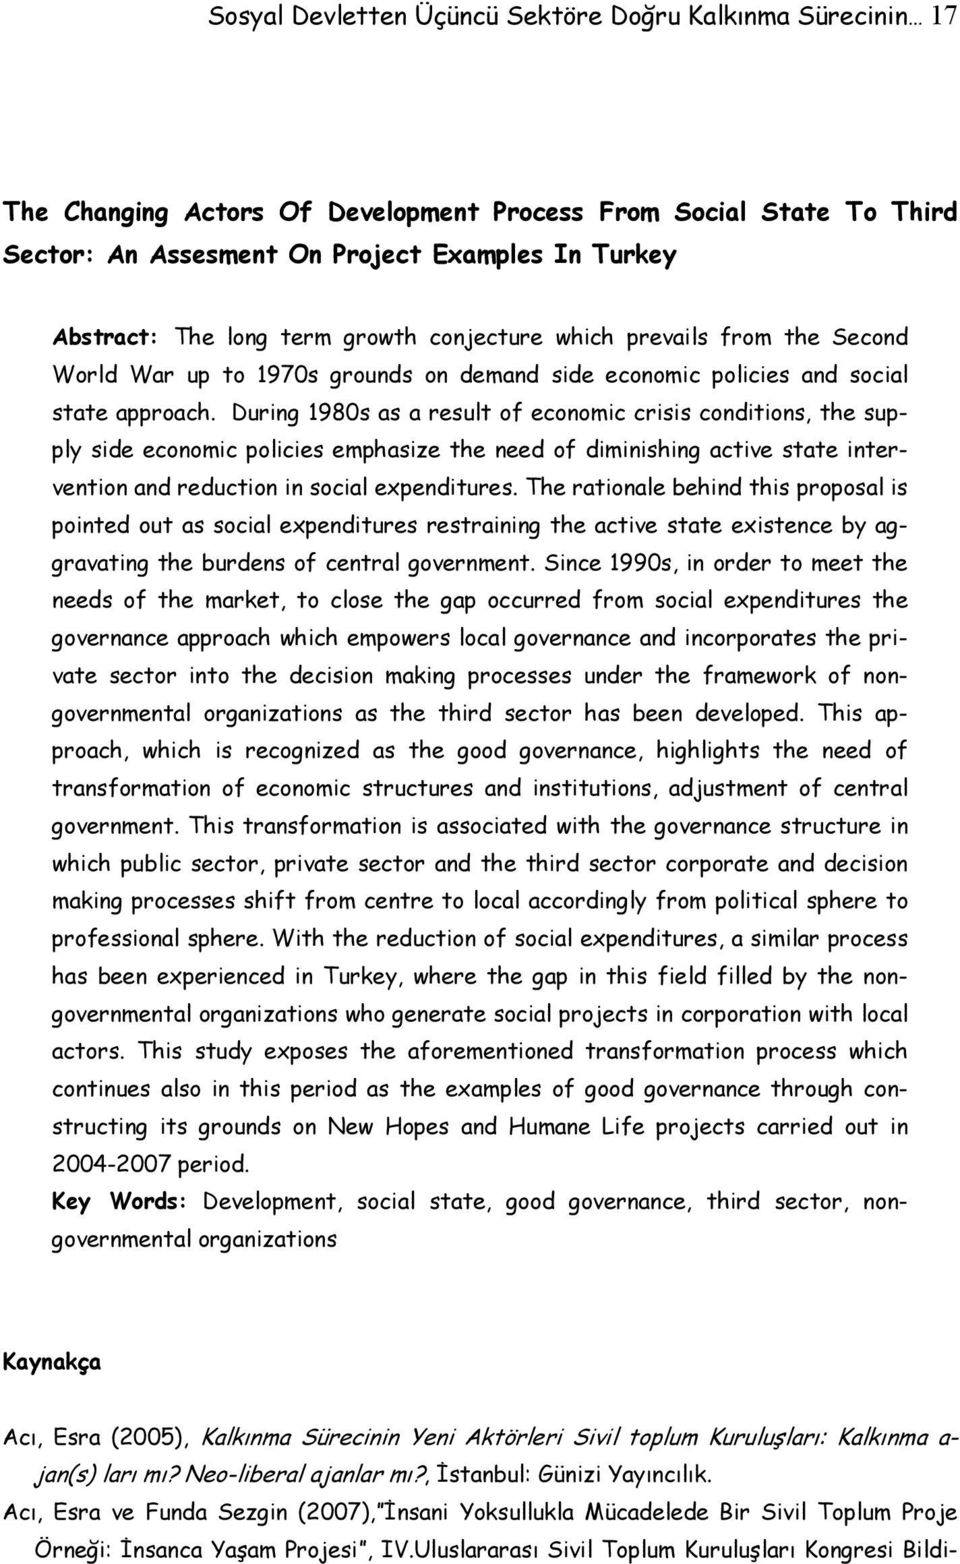 During 1980s as a result of economic crisis conditions, the supply side economic policies emphasize the need of diminishing active state intervention and reduction in social expenditures.